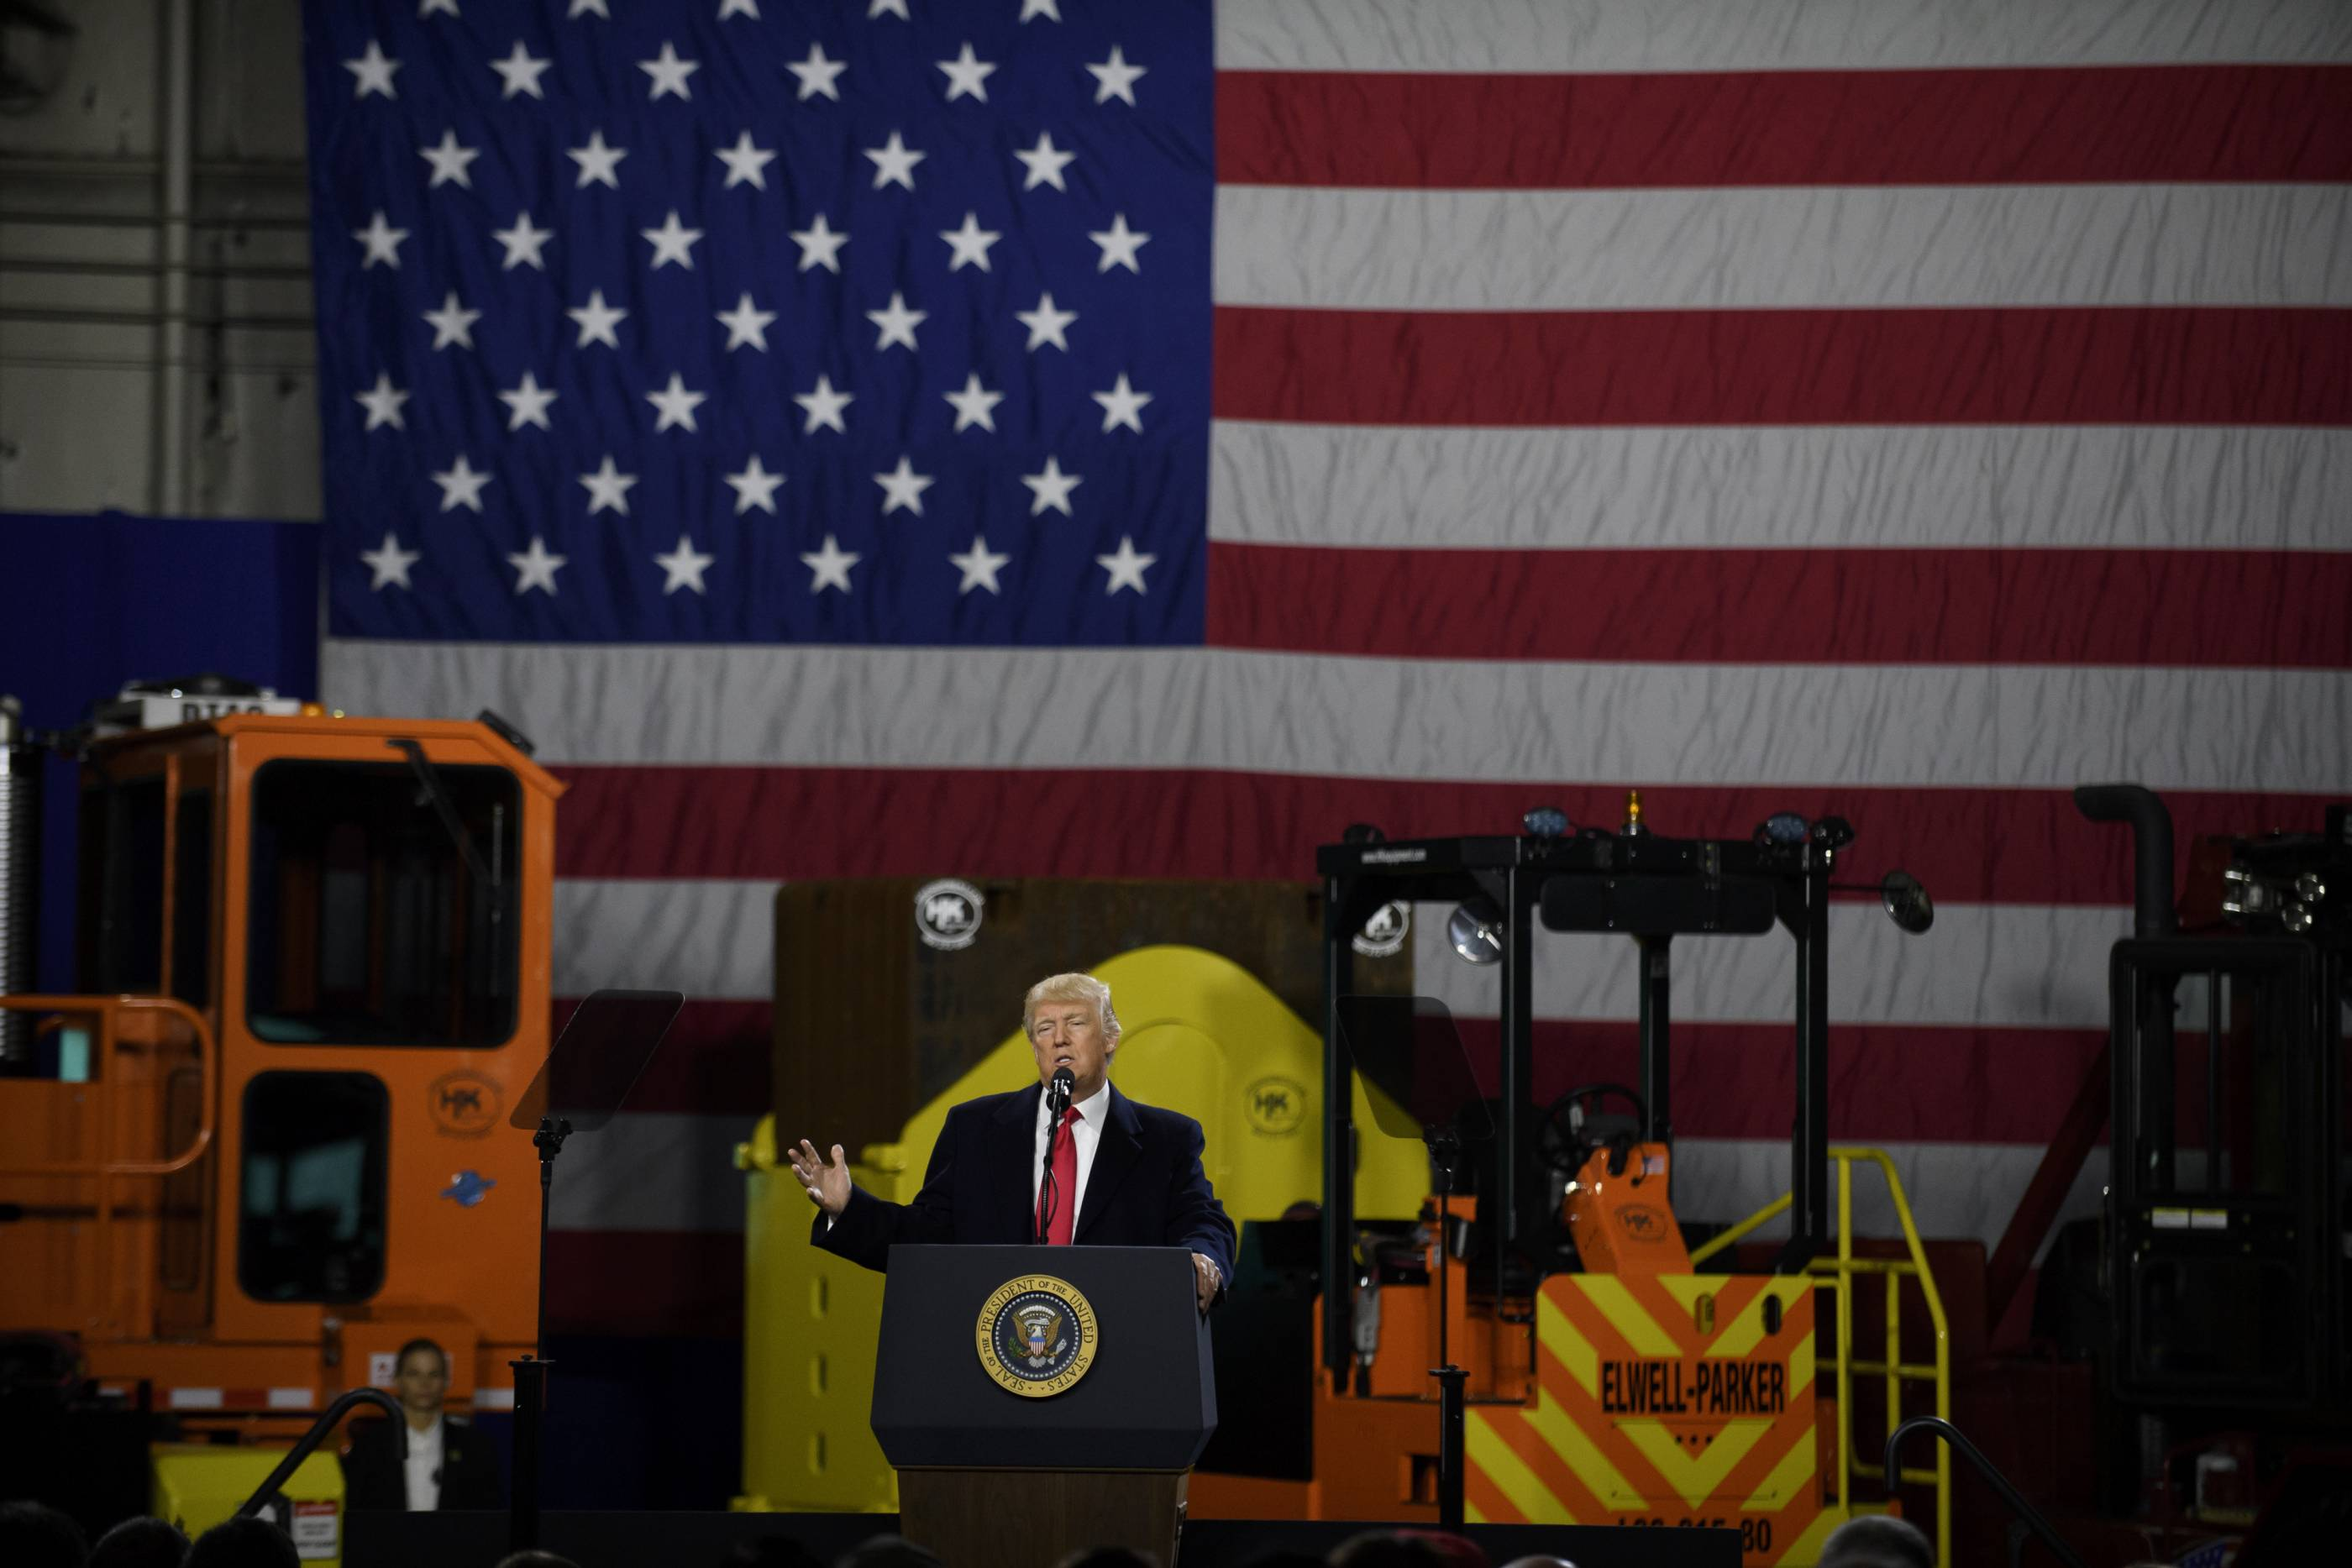 President Trump Visits Equipment Manufacturing Plant In Pennsylvania